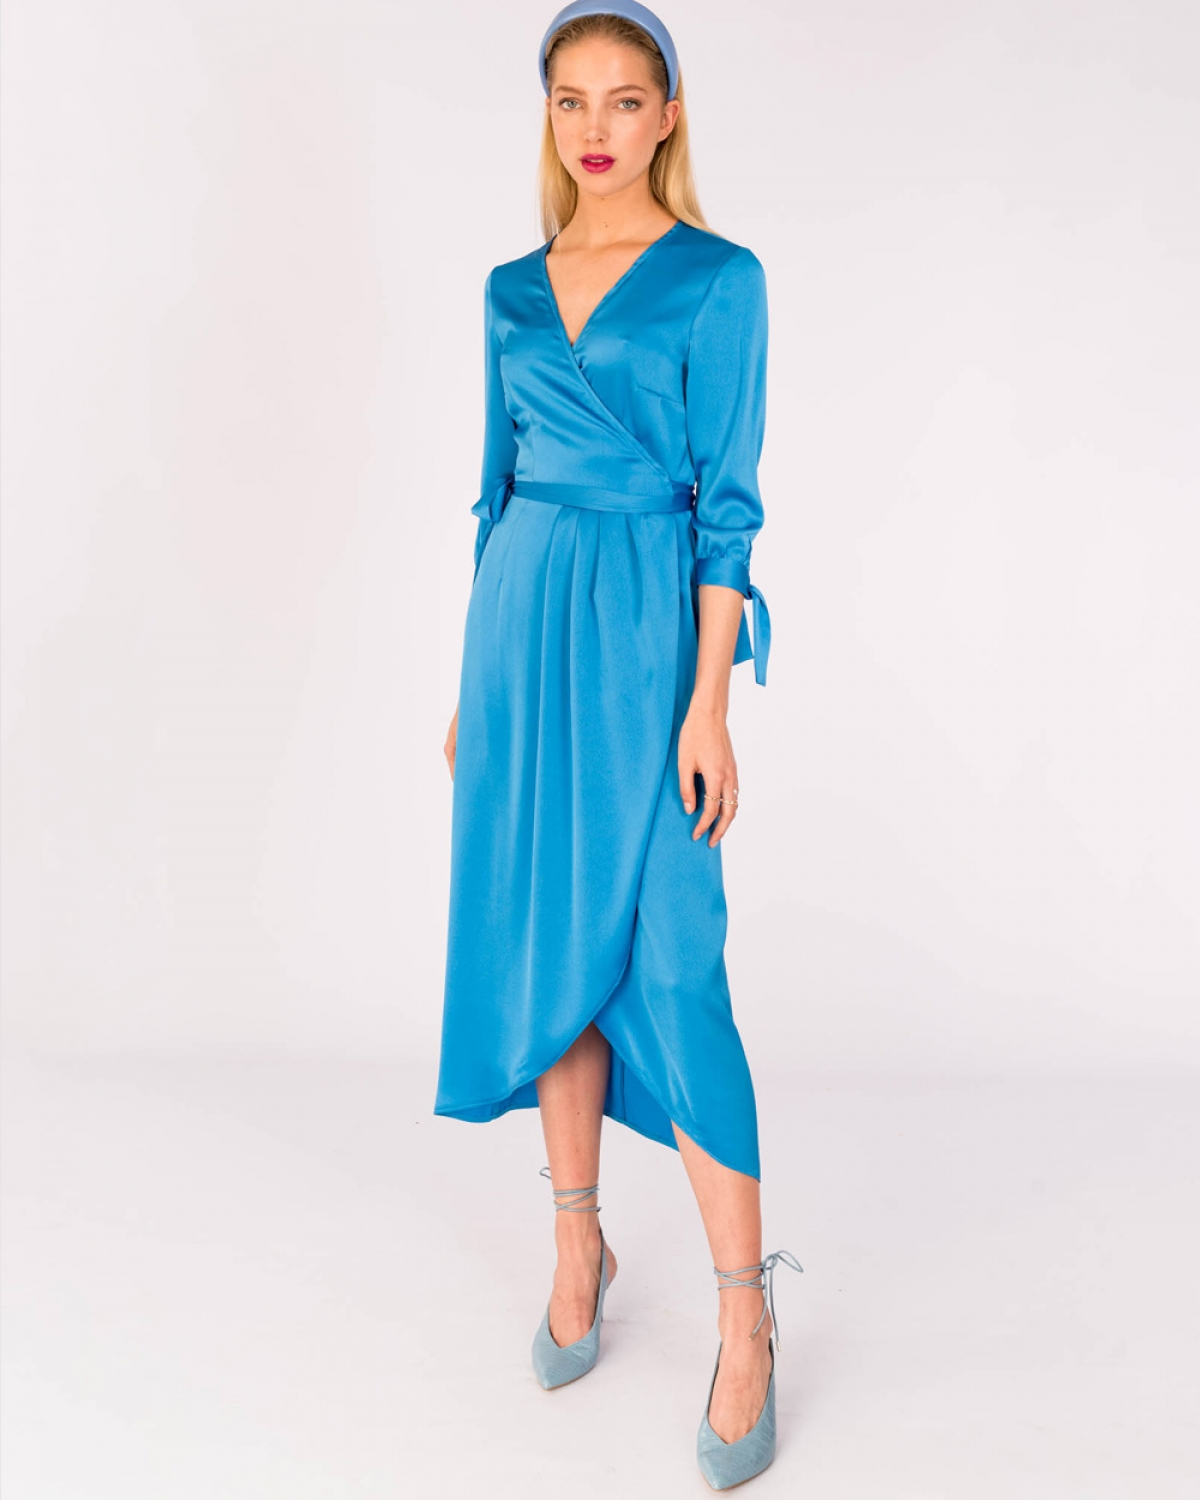 Mocrysta Blue Dress